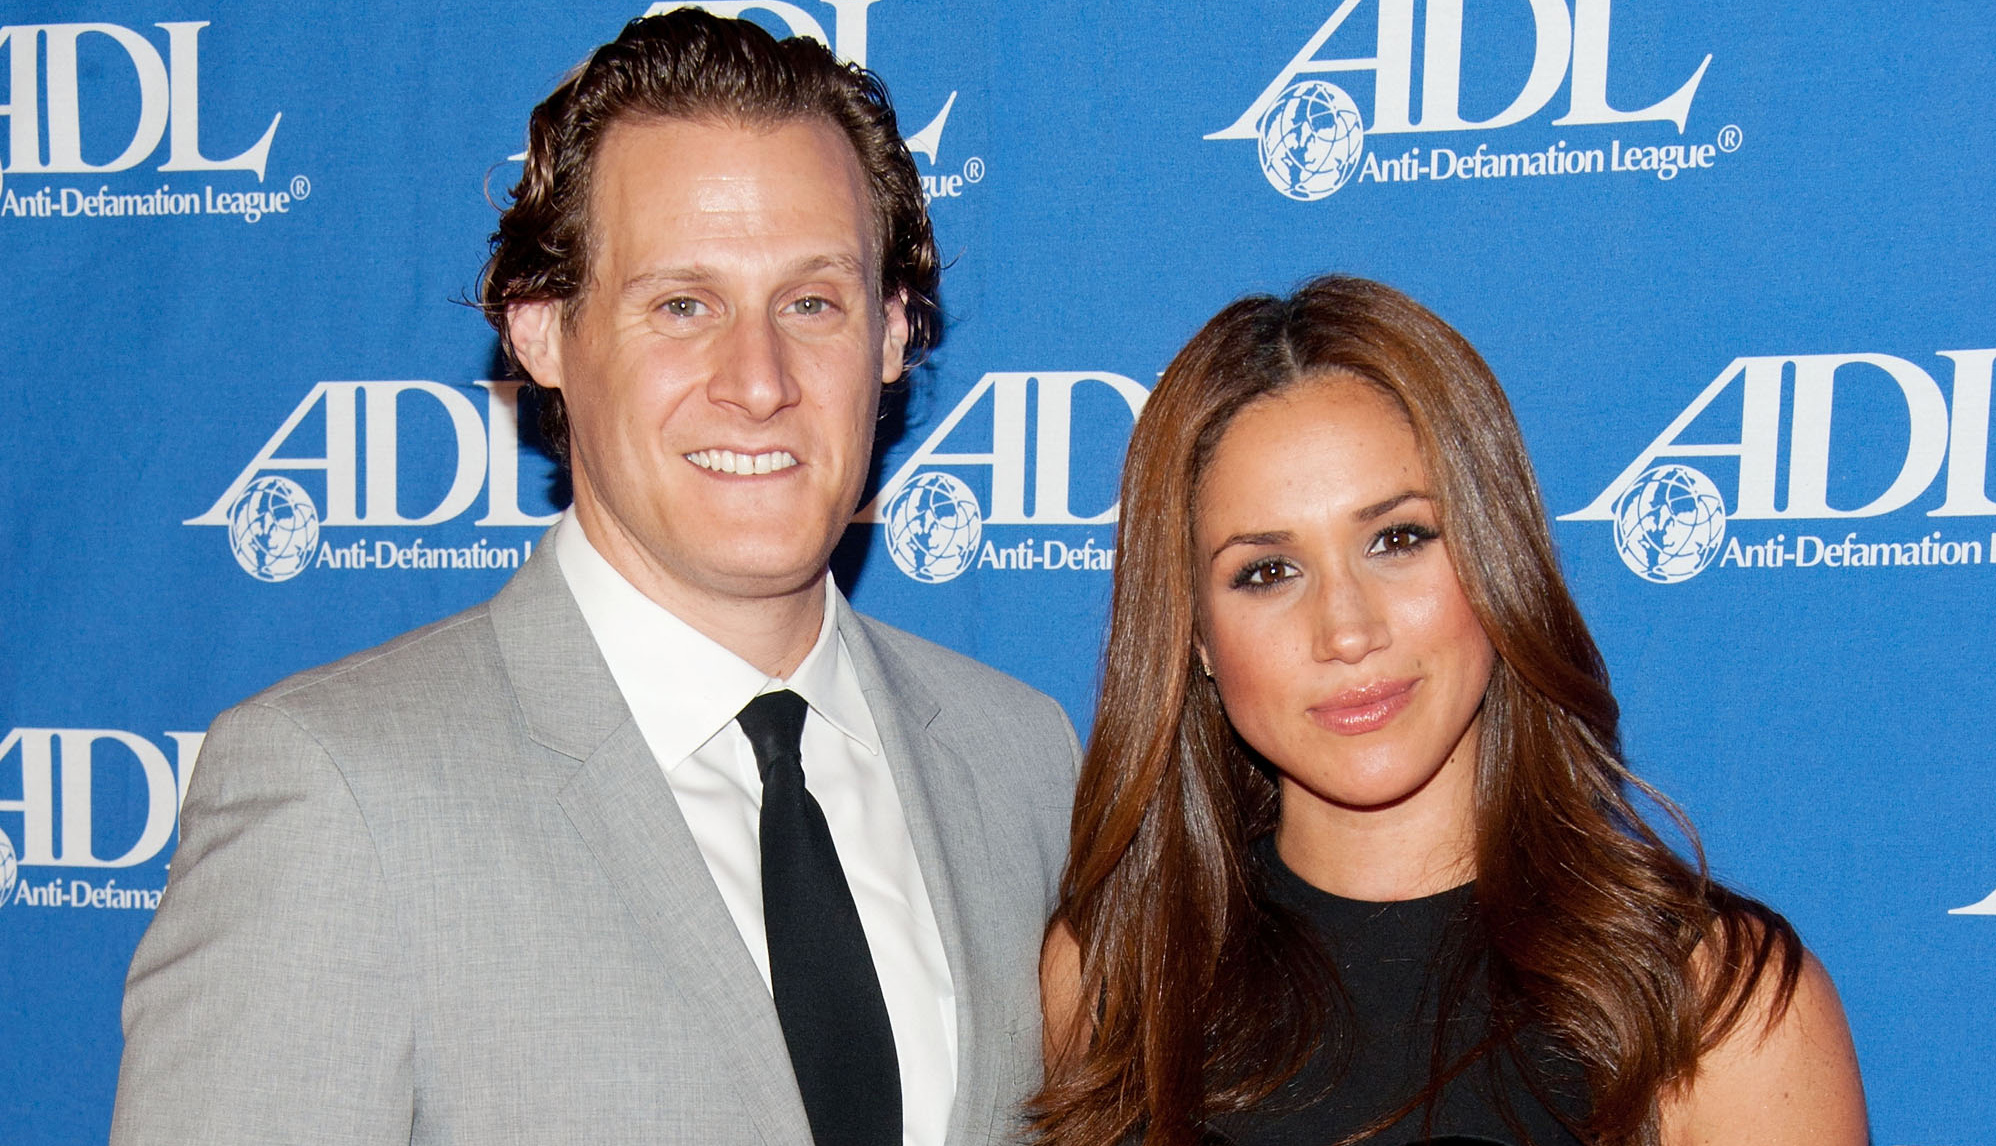 Bethenny Frankel Reveals She Once Dated Meghan Markle's Ex Husband Trevor Engelson